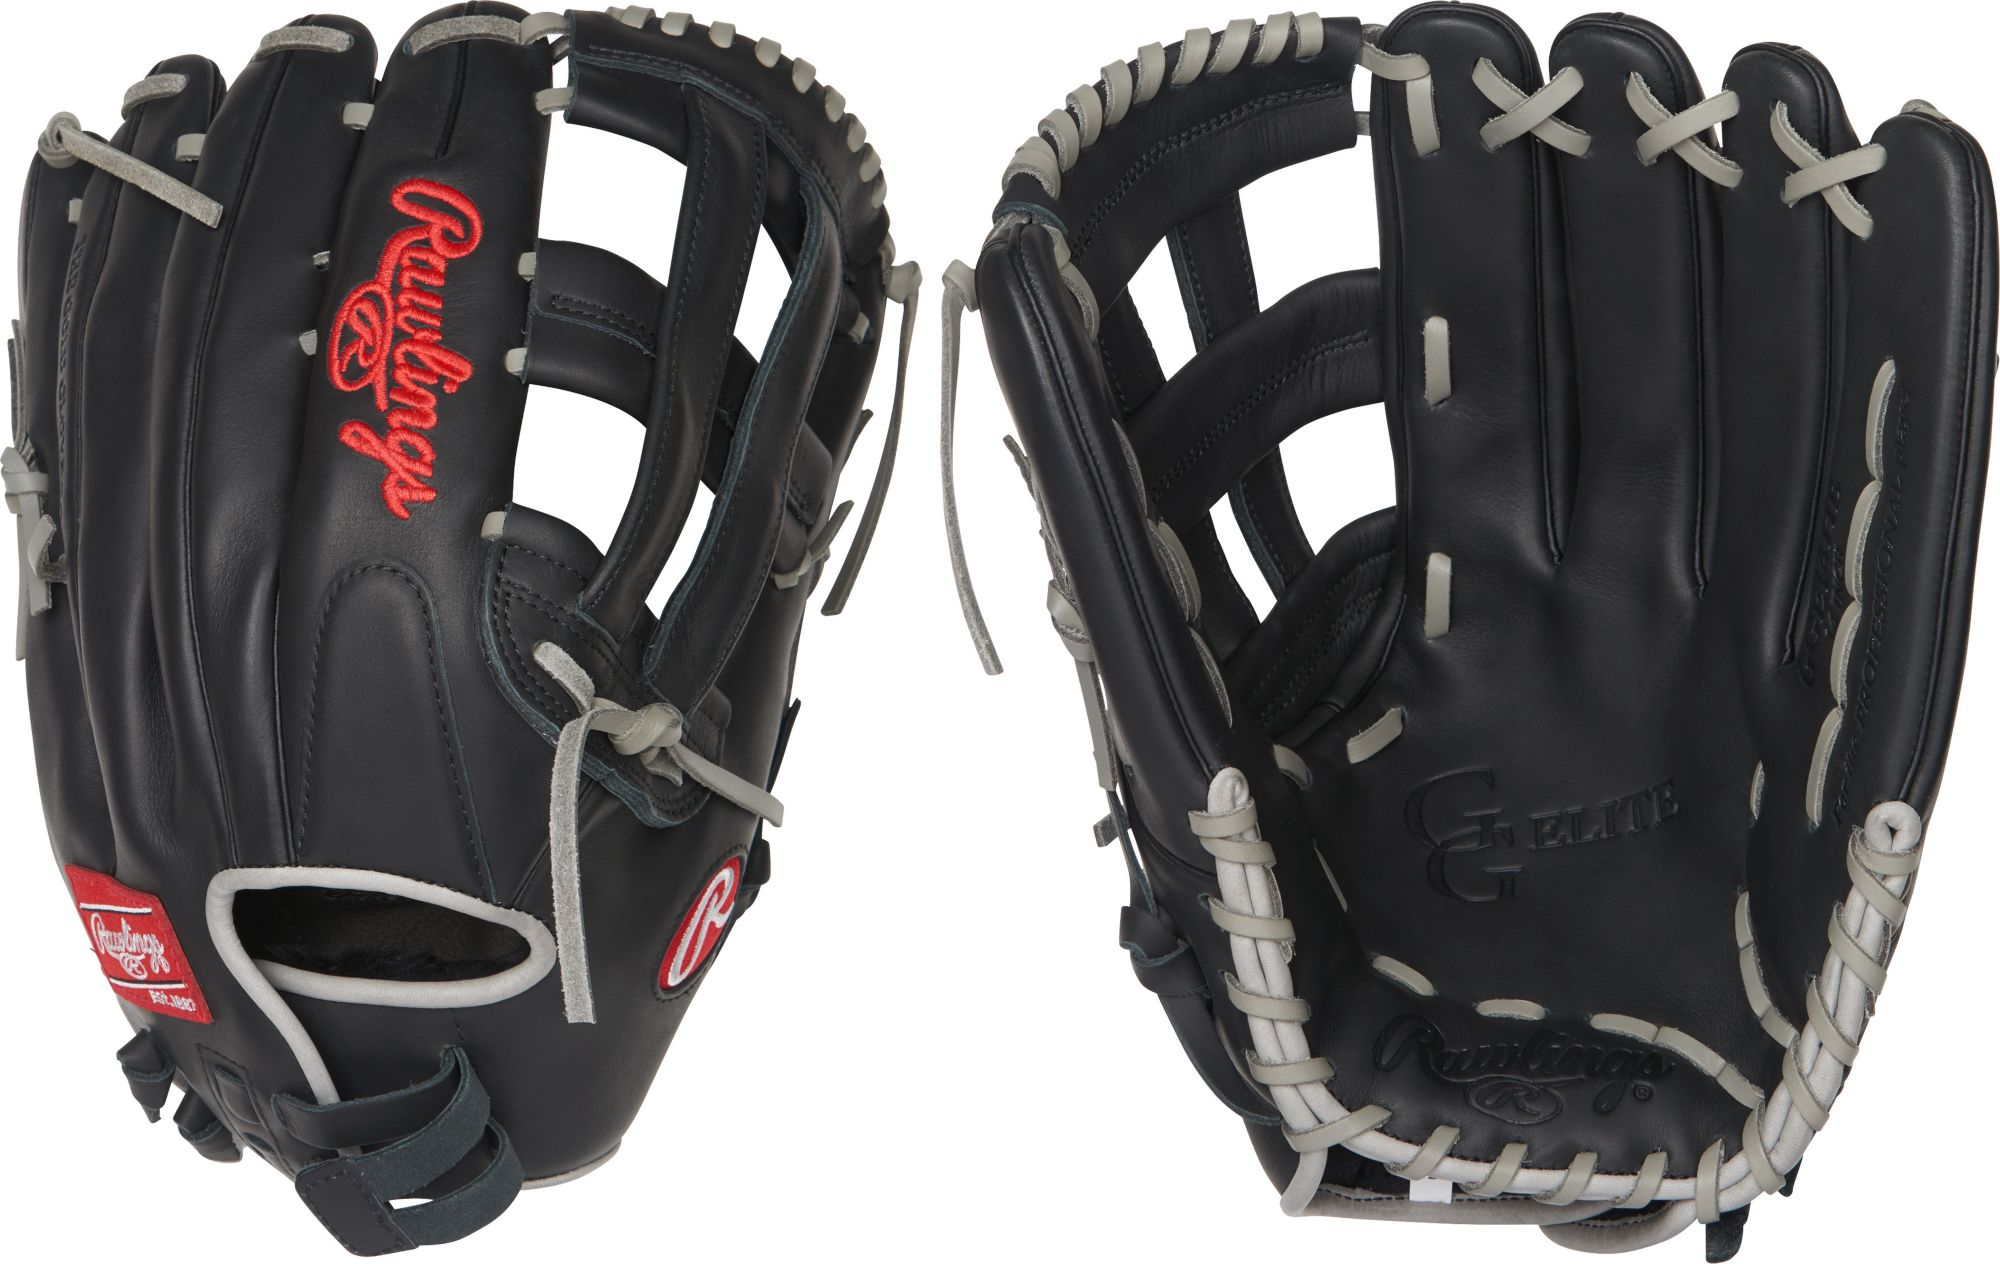 Slow pitch softball gloves for adults dicks sporting goods product image rawlings 14 gg elite series slow pitch glove 2018 sciox Gallery